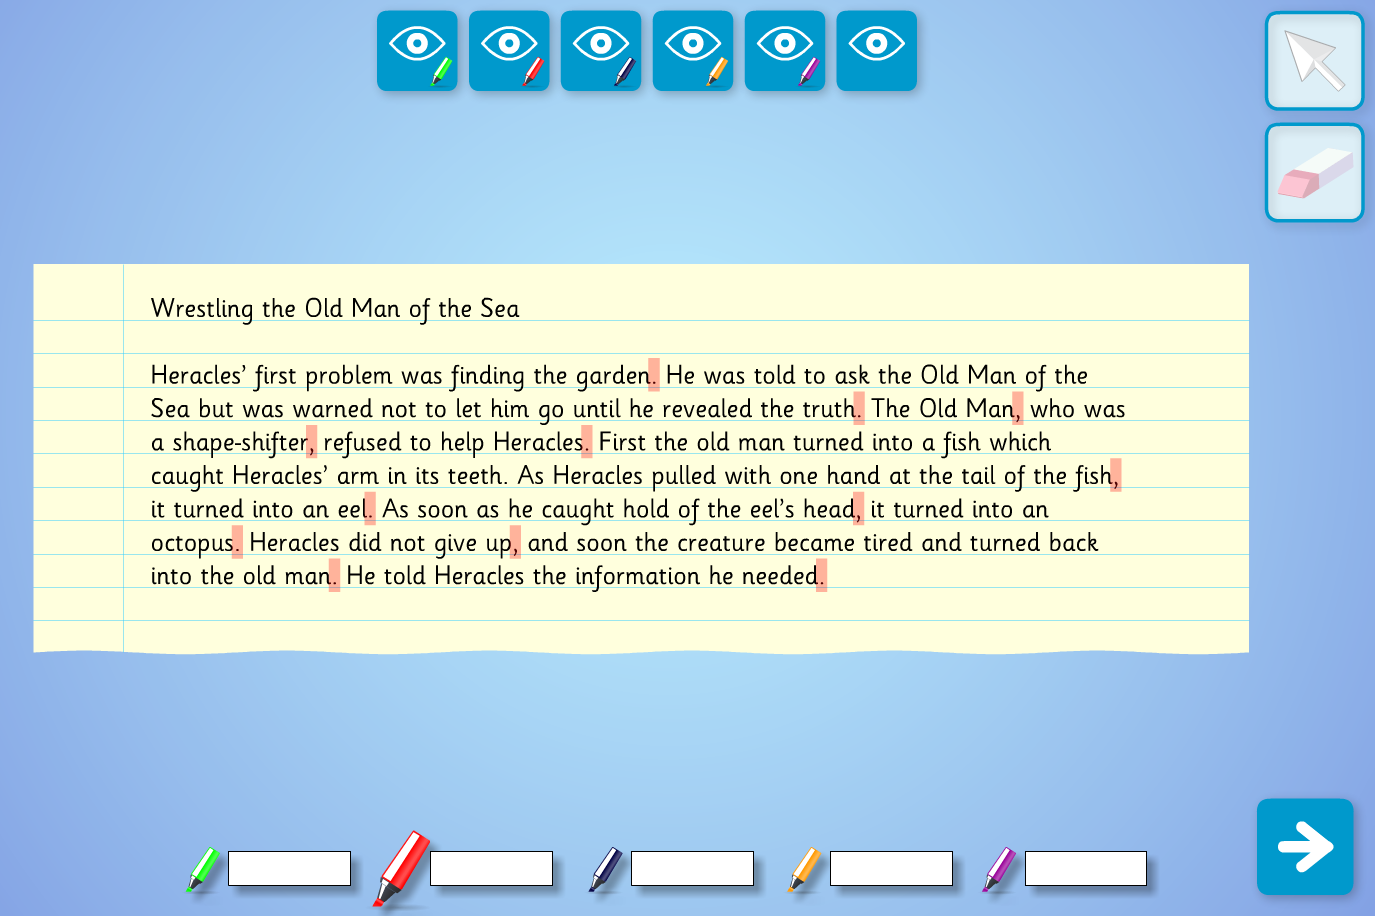 Interactive Highlighter Text Analysis  - Old Man of the Sea - KS2 Literacy